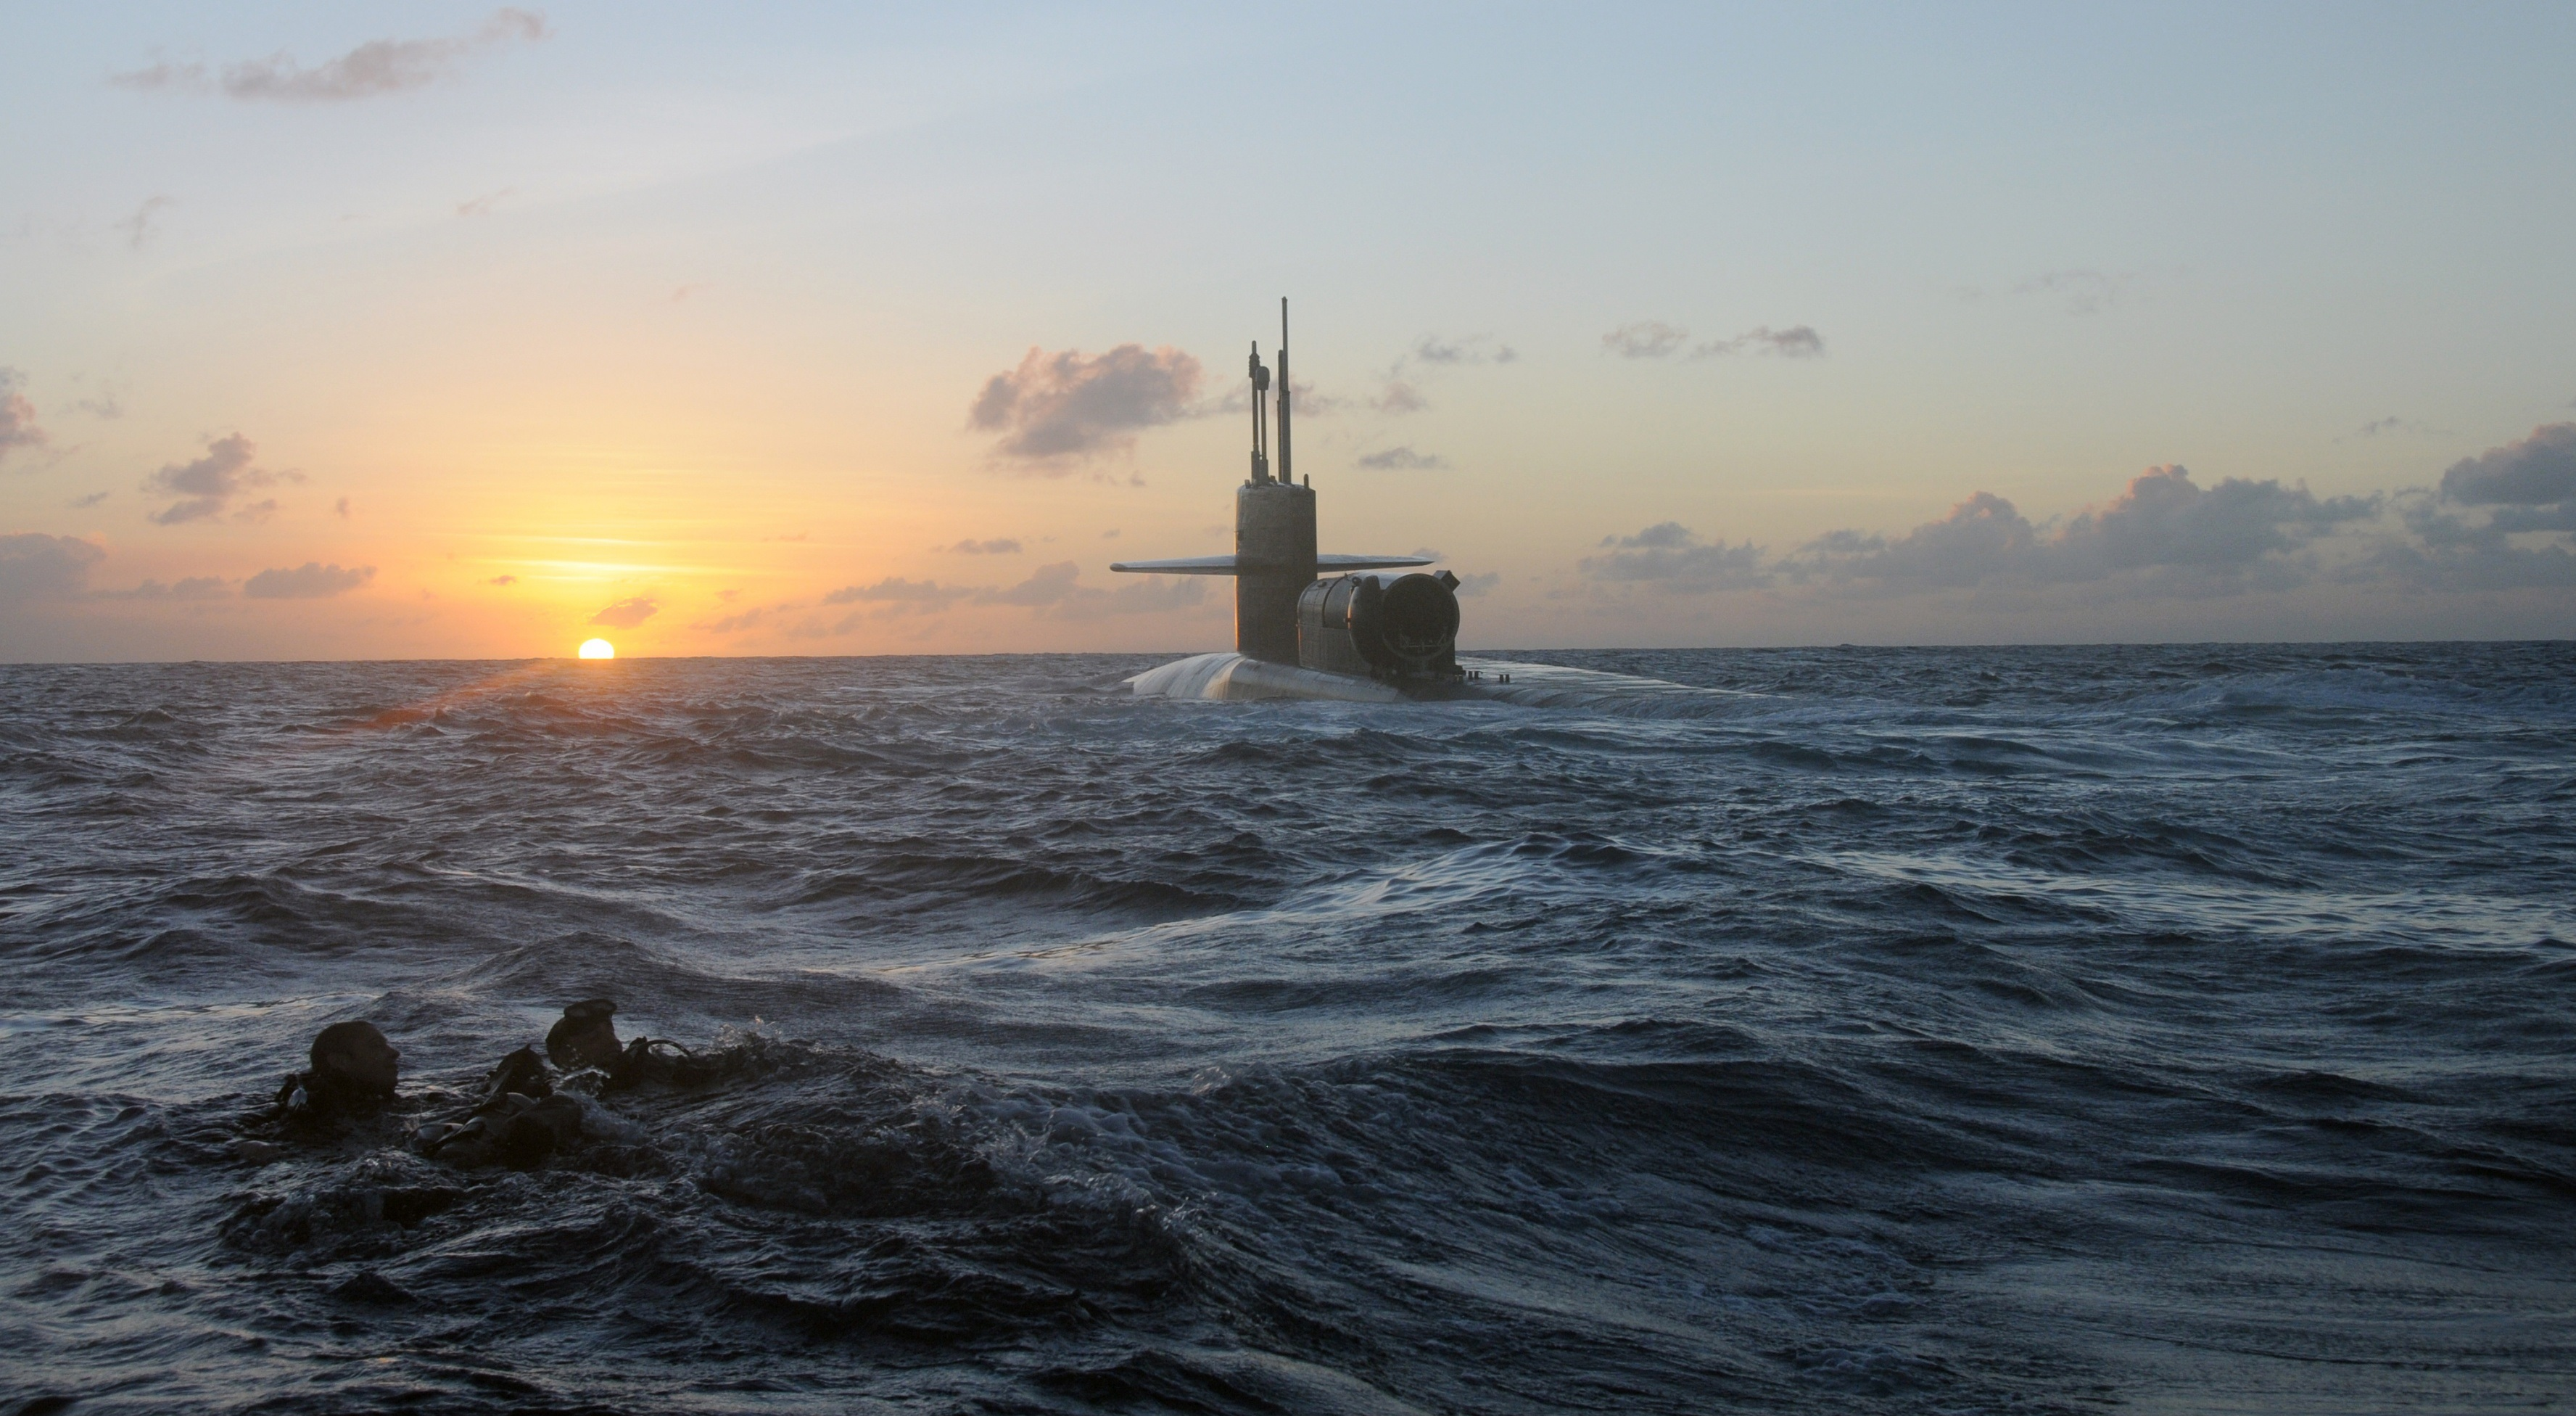 us_military_submarine-wallpaper-3554x1999